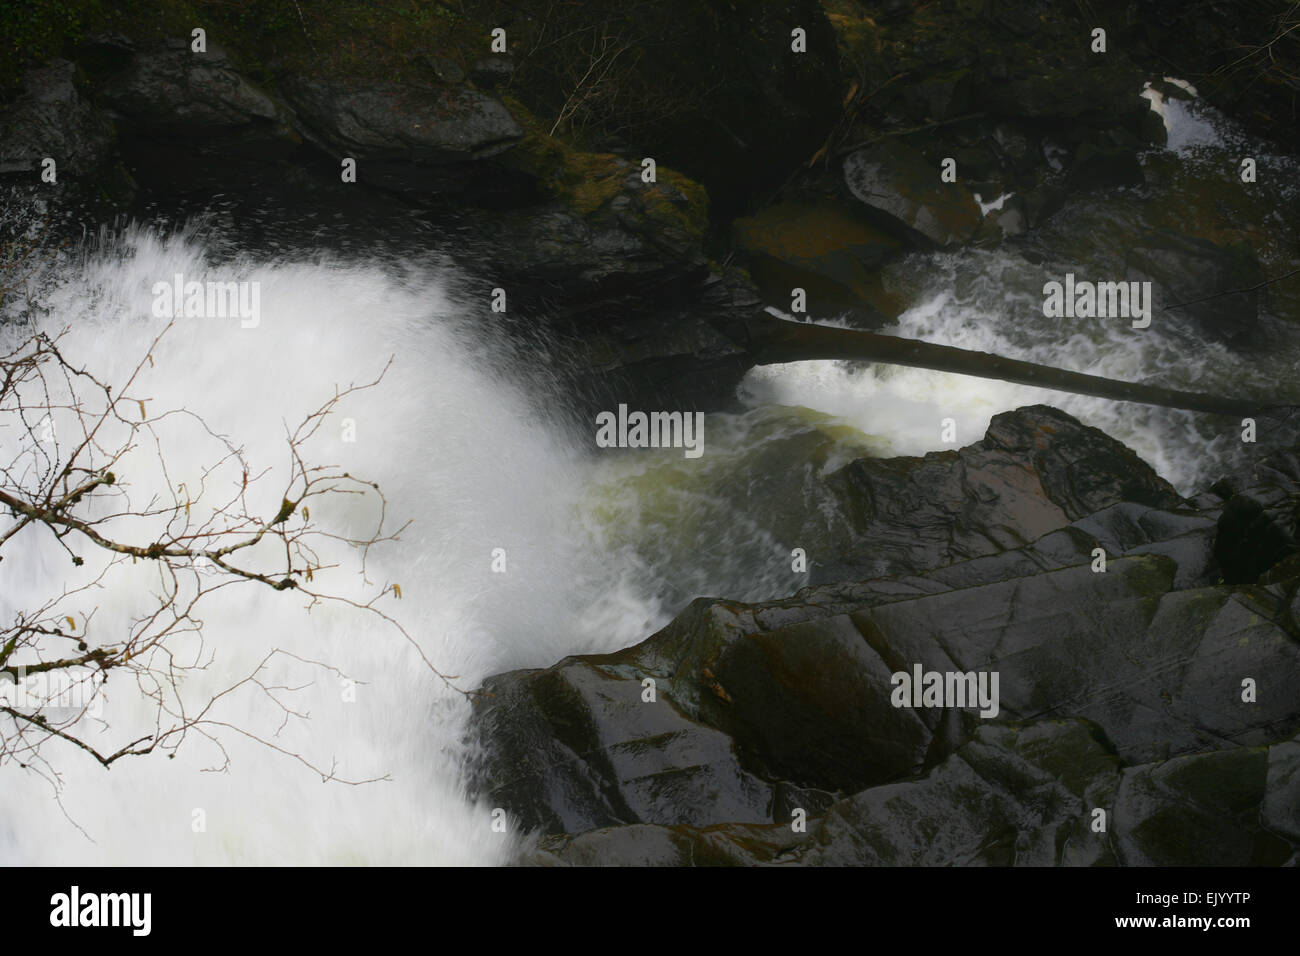 The explosive force of the falls on the Birks of Aberfeldy - Stock Image